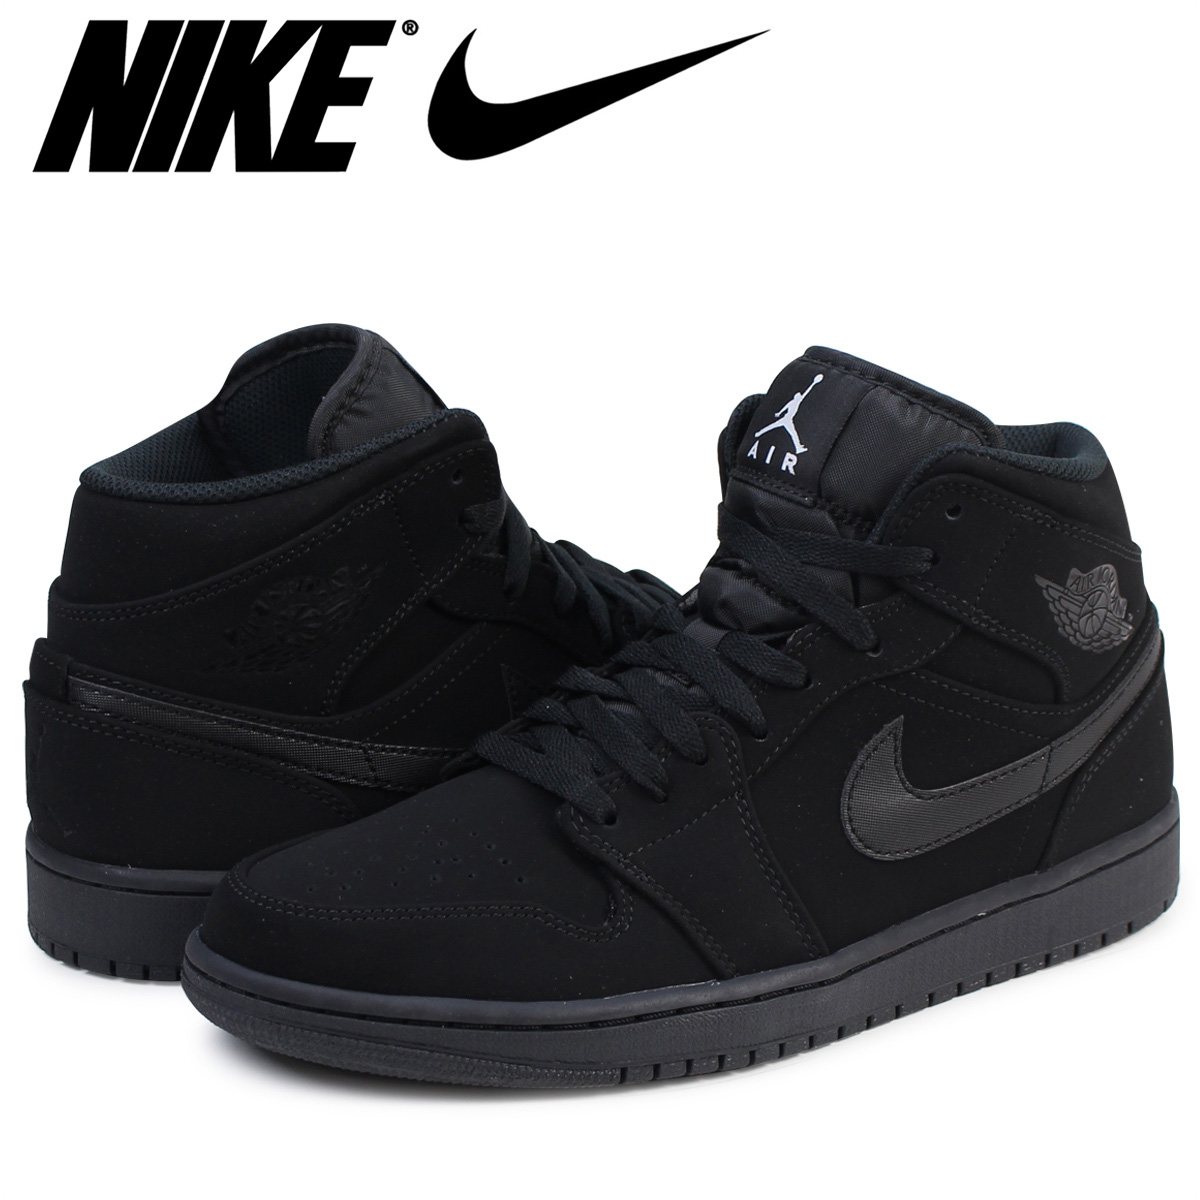 wholesale dealer 3b149 43fcf NIKE AIR JORDAN 1 MID Nike Air Jordan 1 sneakers men 554,724-040 black